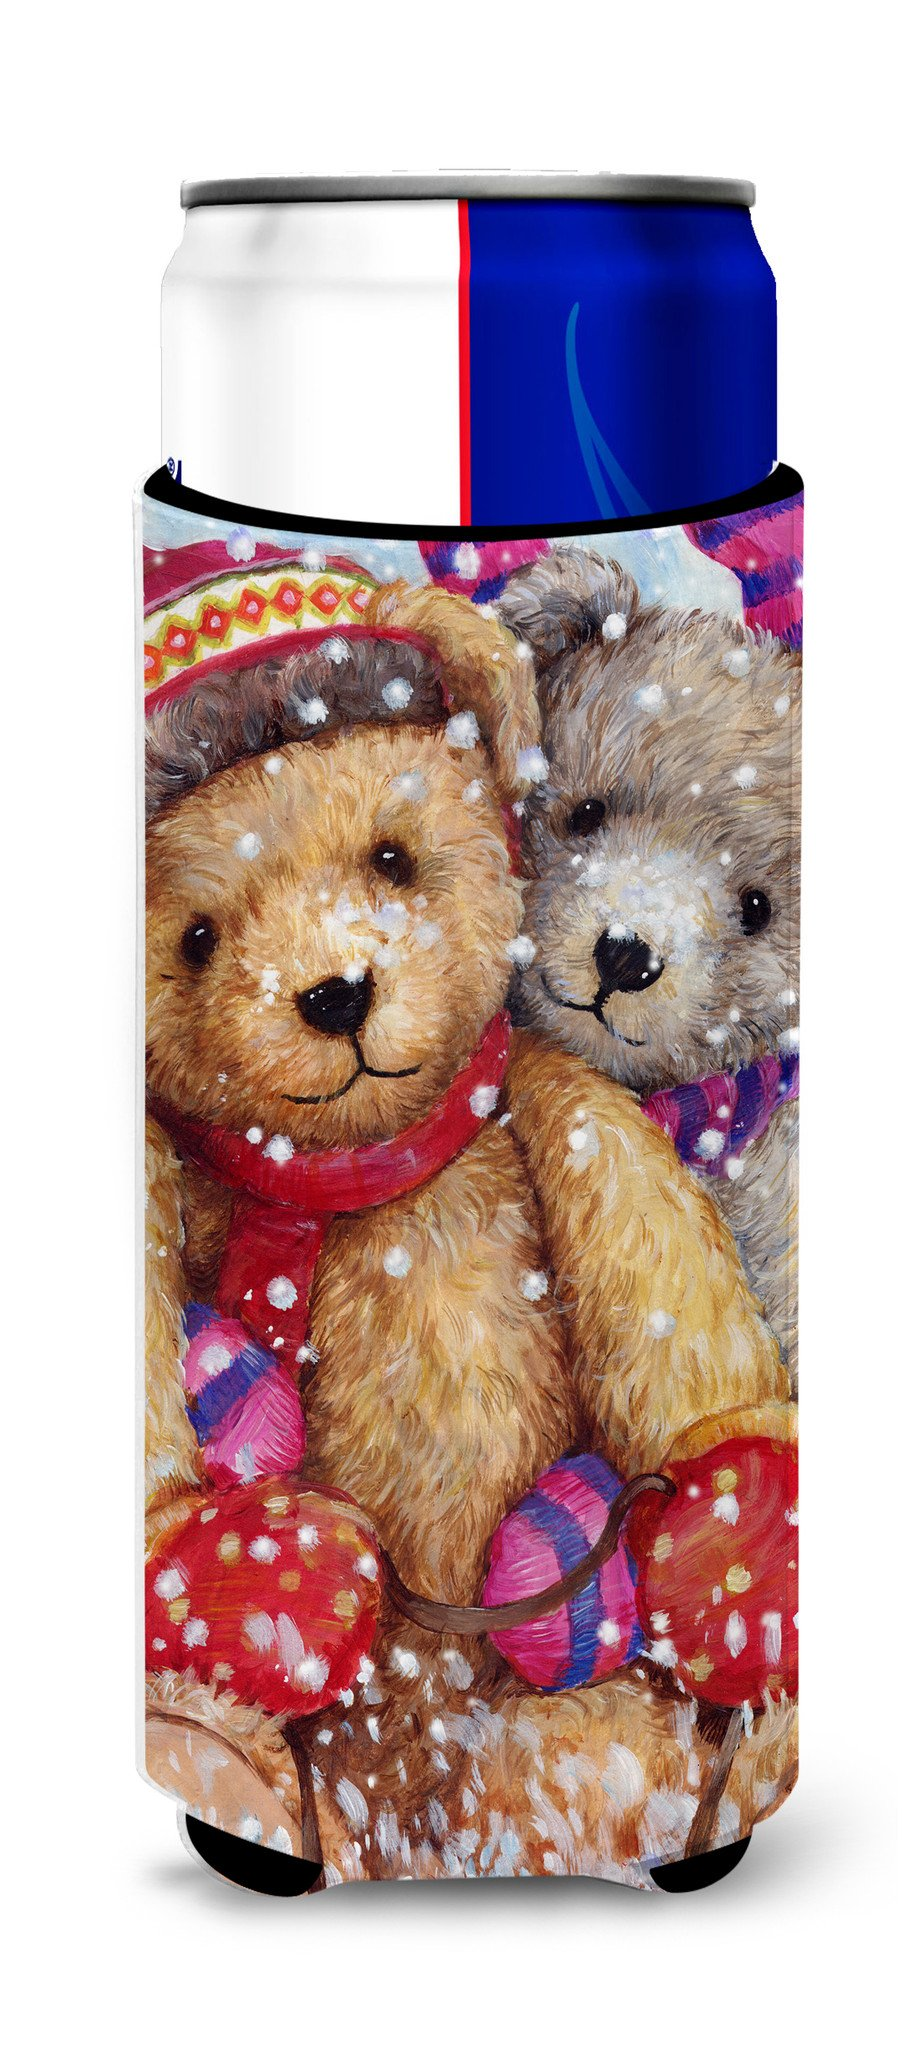 Winter Snow Teddy Bears Ultra Beverage Insulators for slim cans CDCO0461MUK by Caroline's Treasures